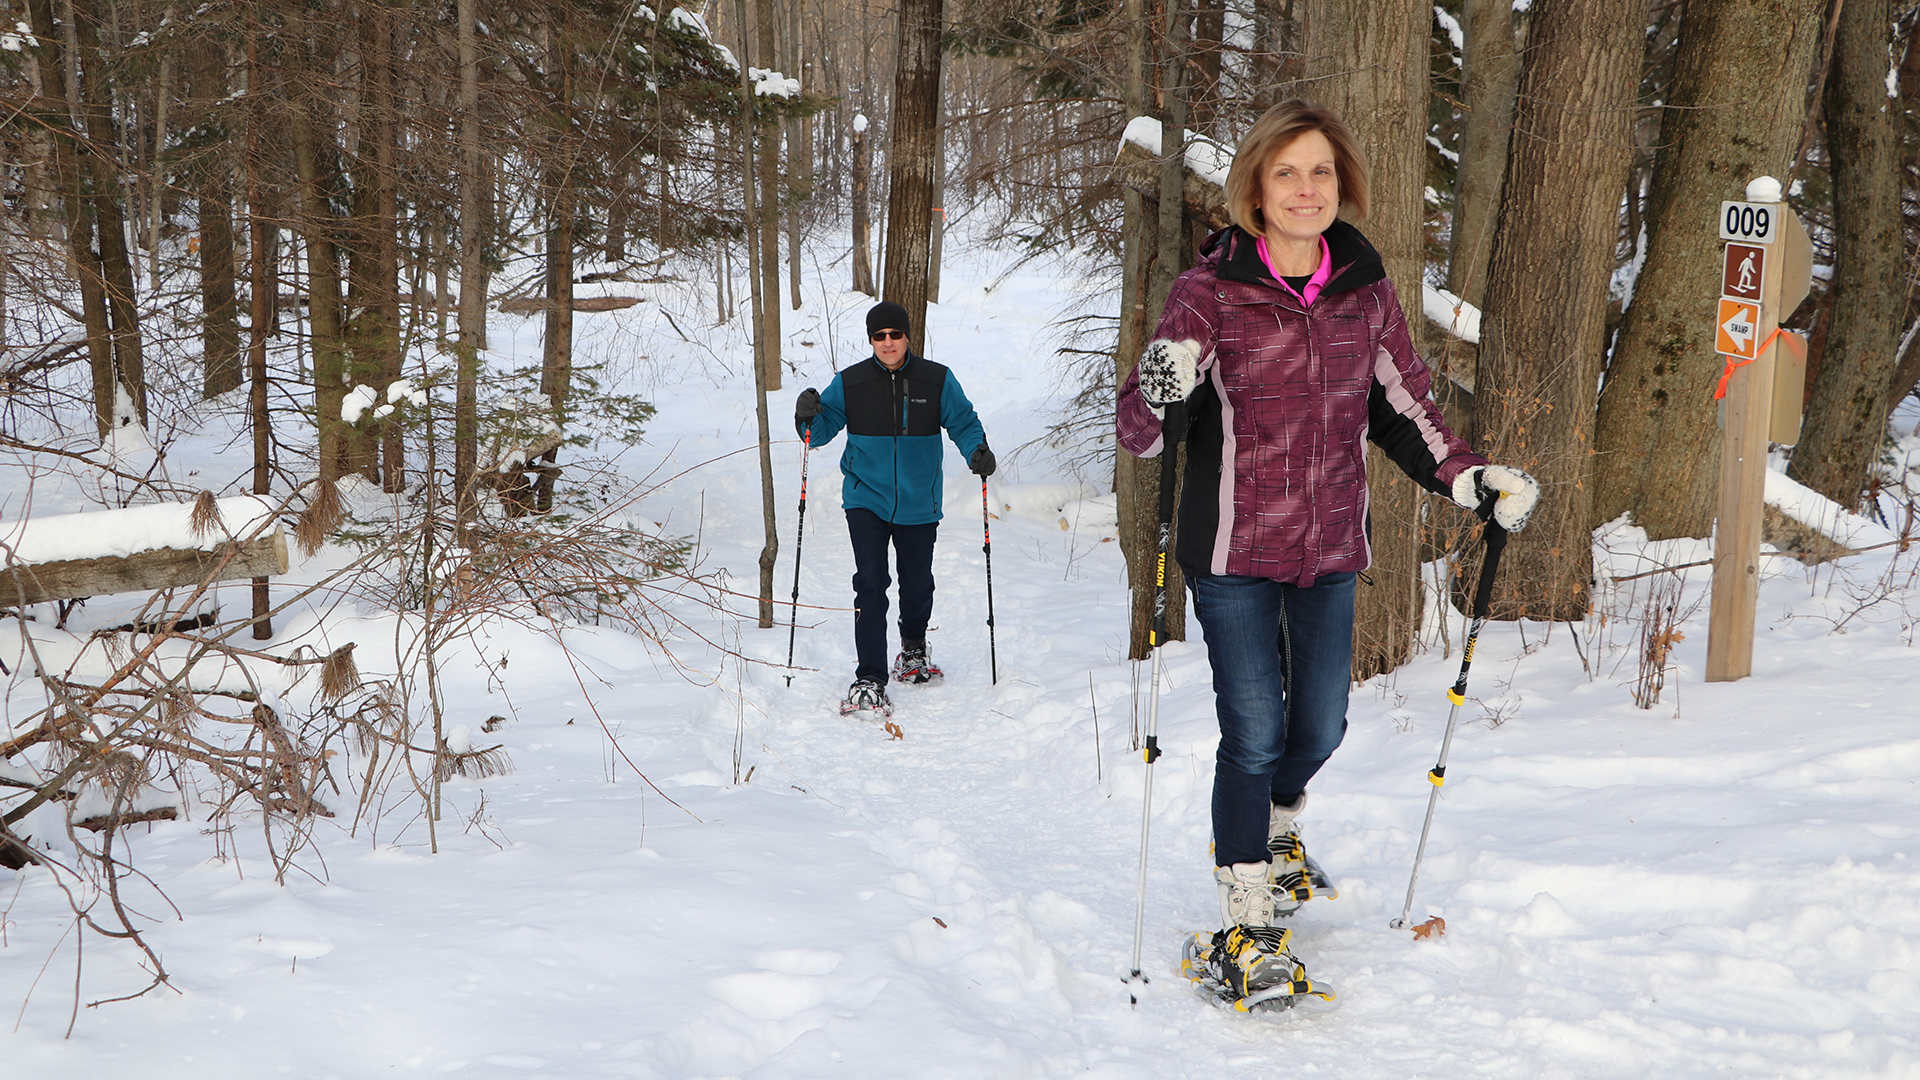 Snowshoeing at Brown County Reforestation Camp